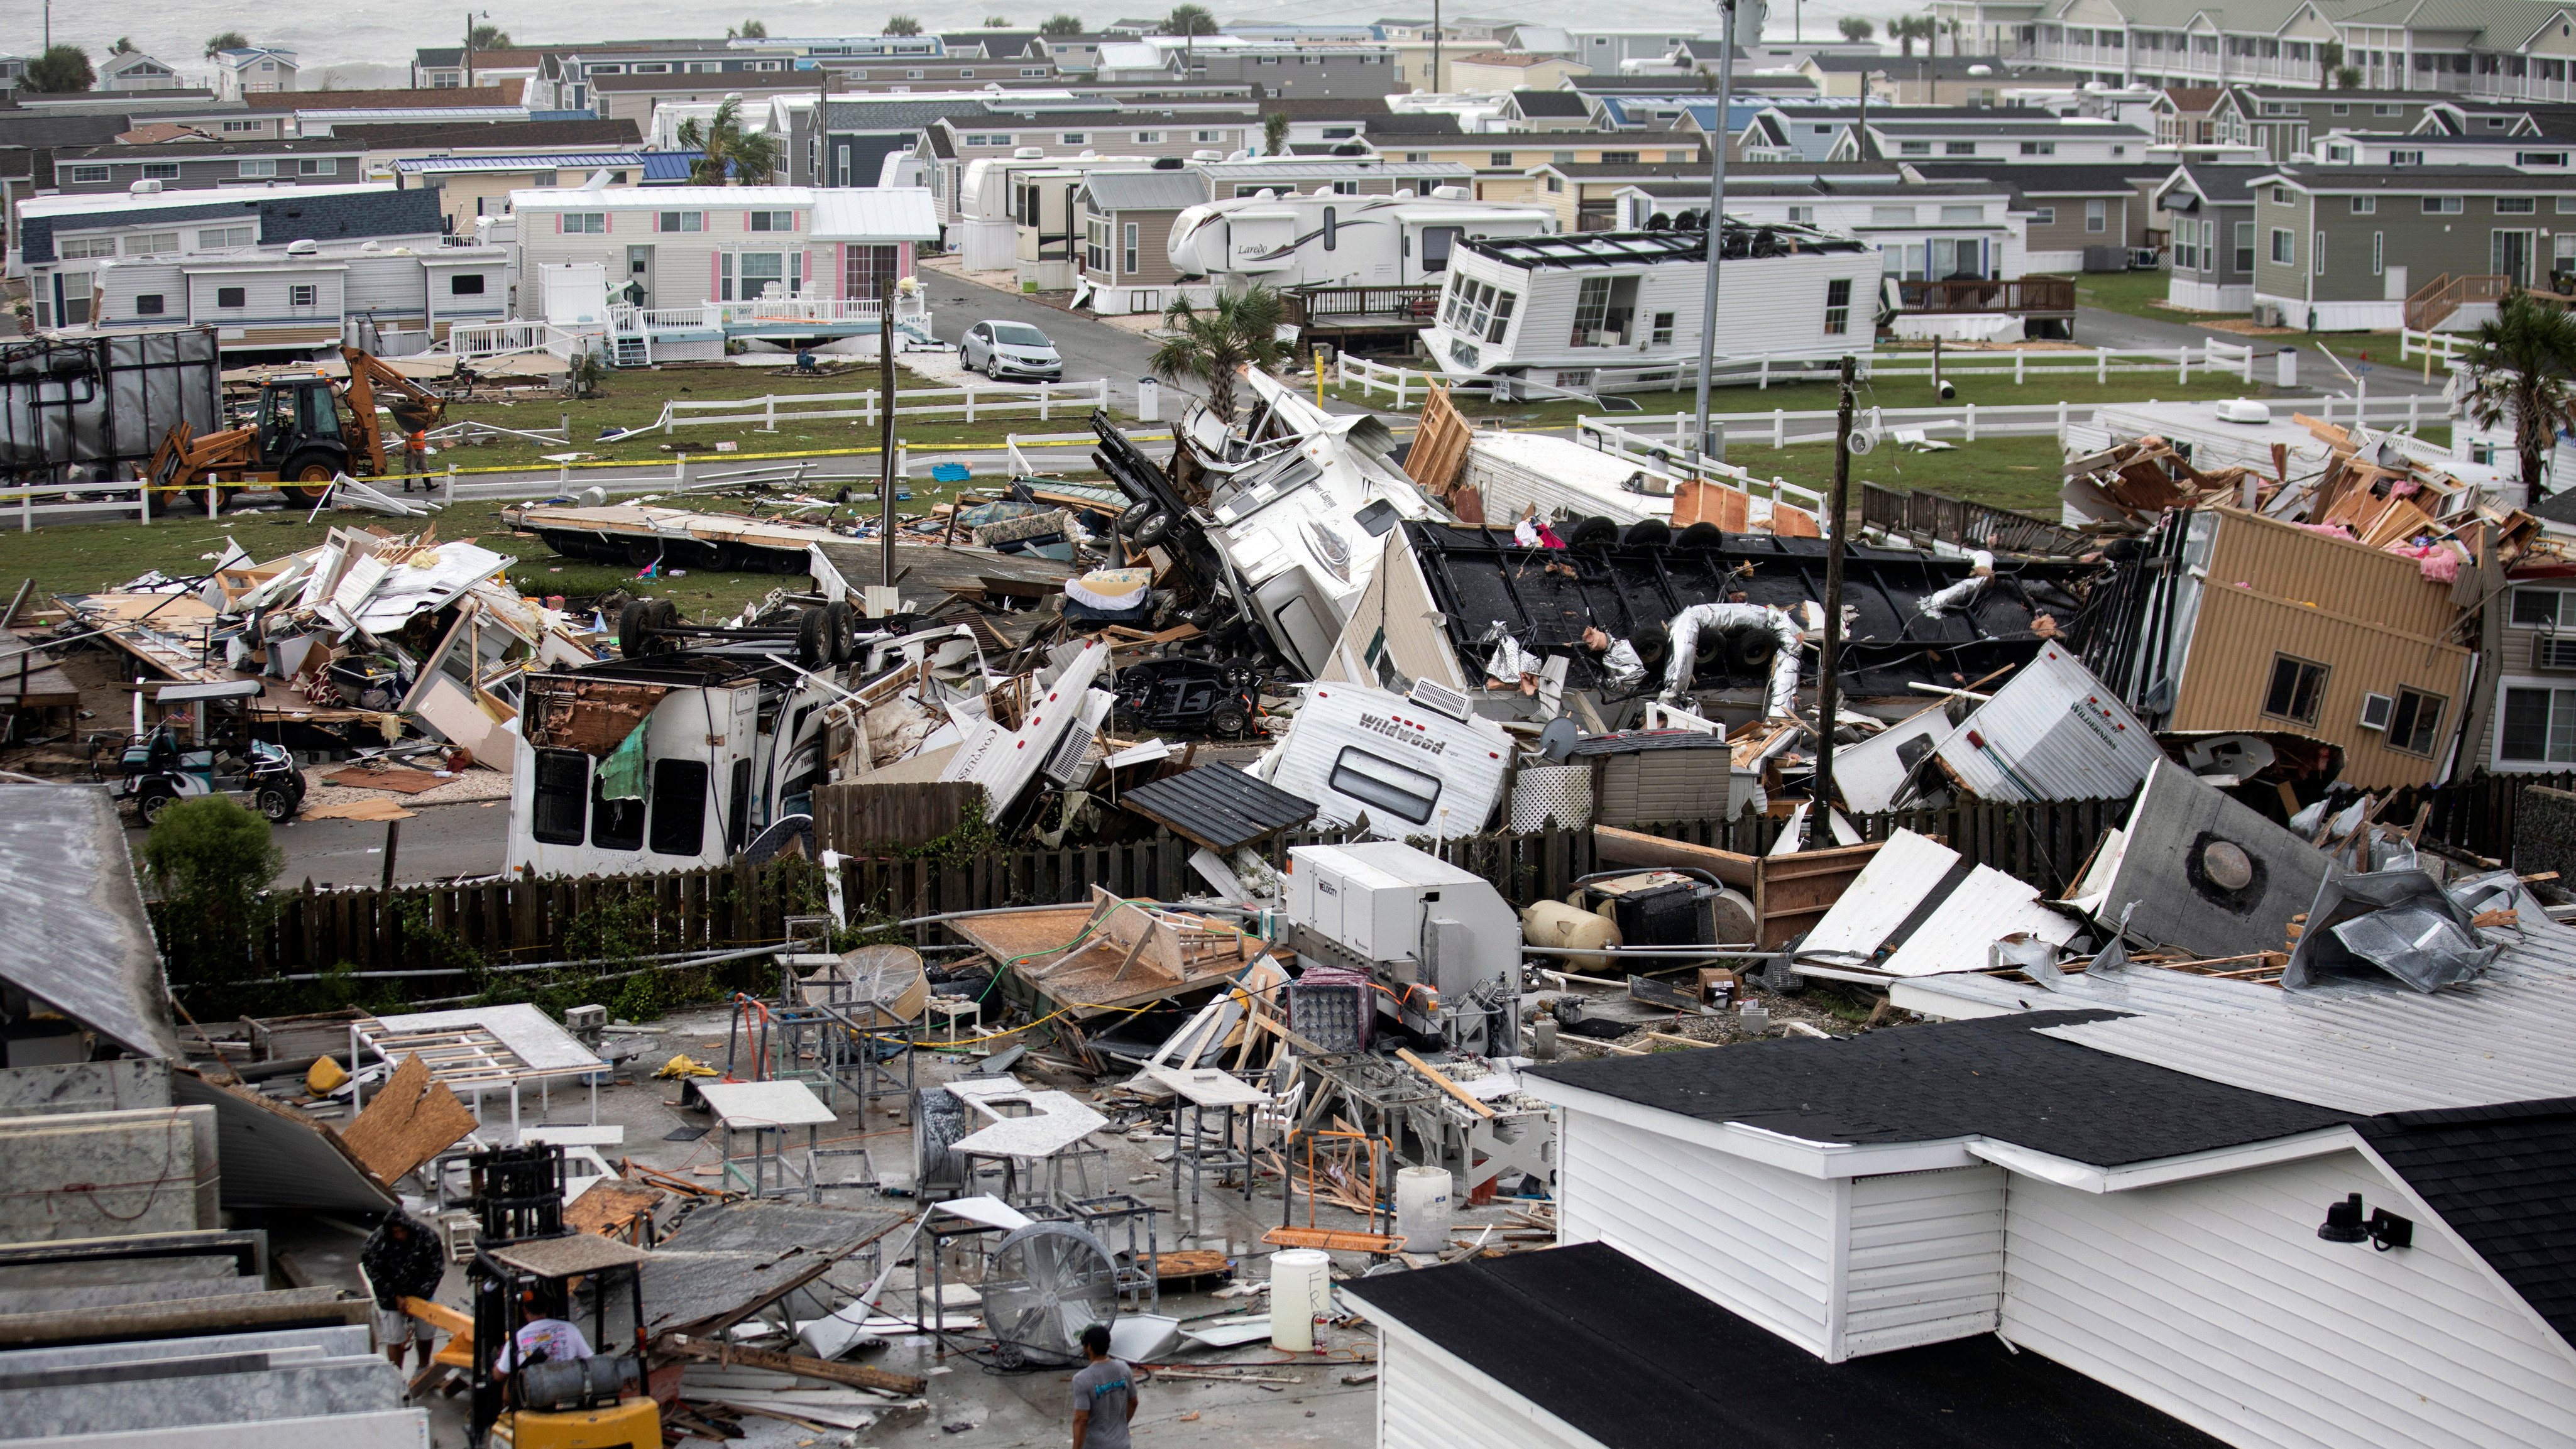 Mobile homes are upended and debris is strewn about at the Holiday Trav-l Park in North Carolina